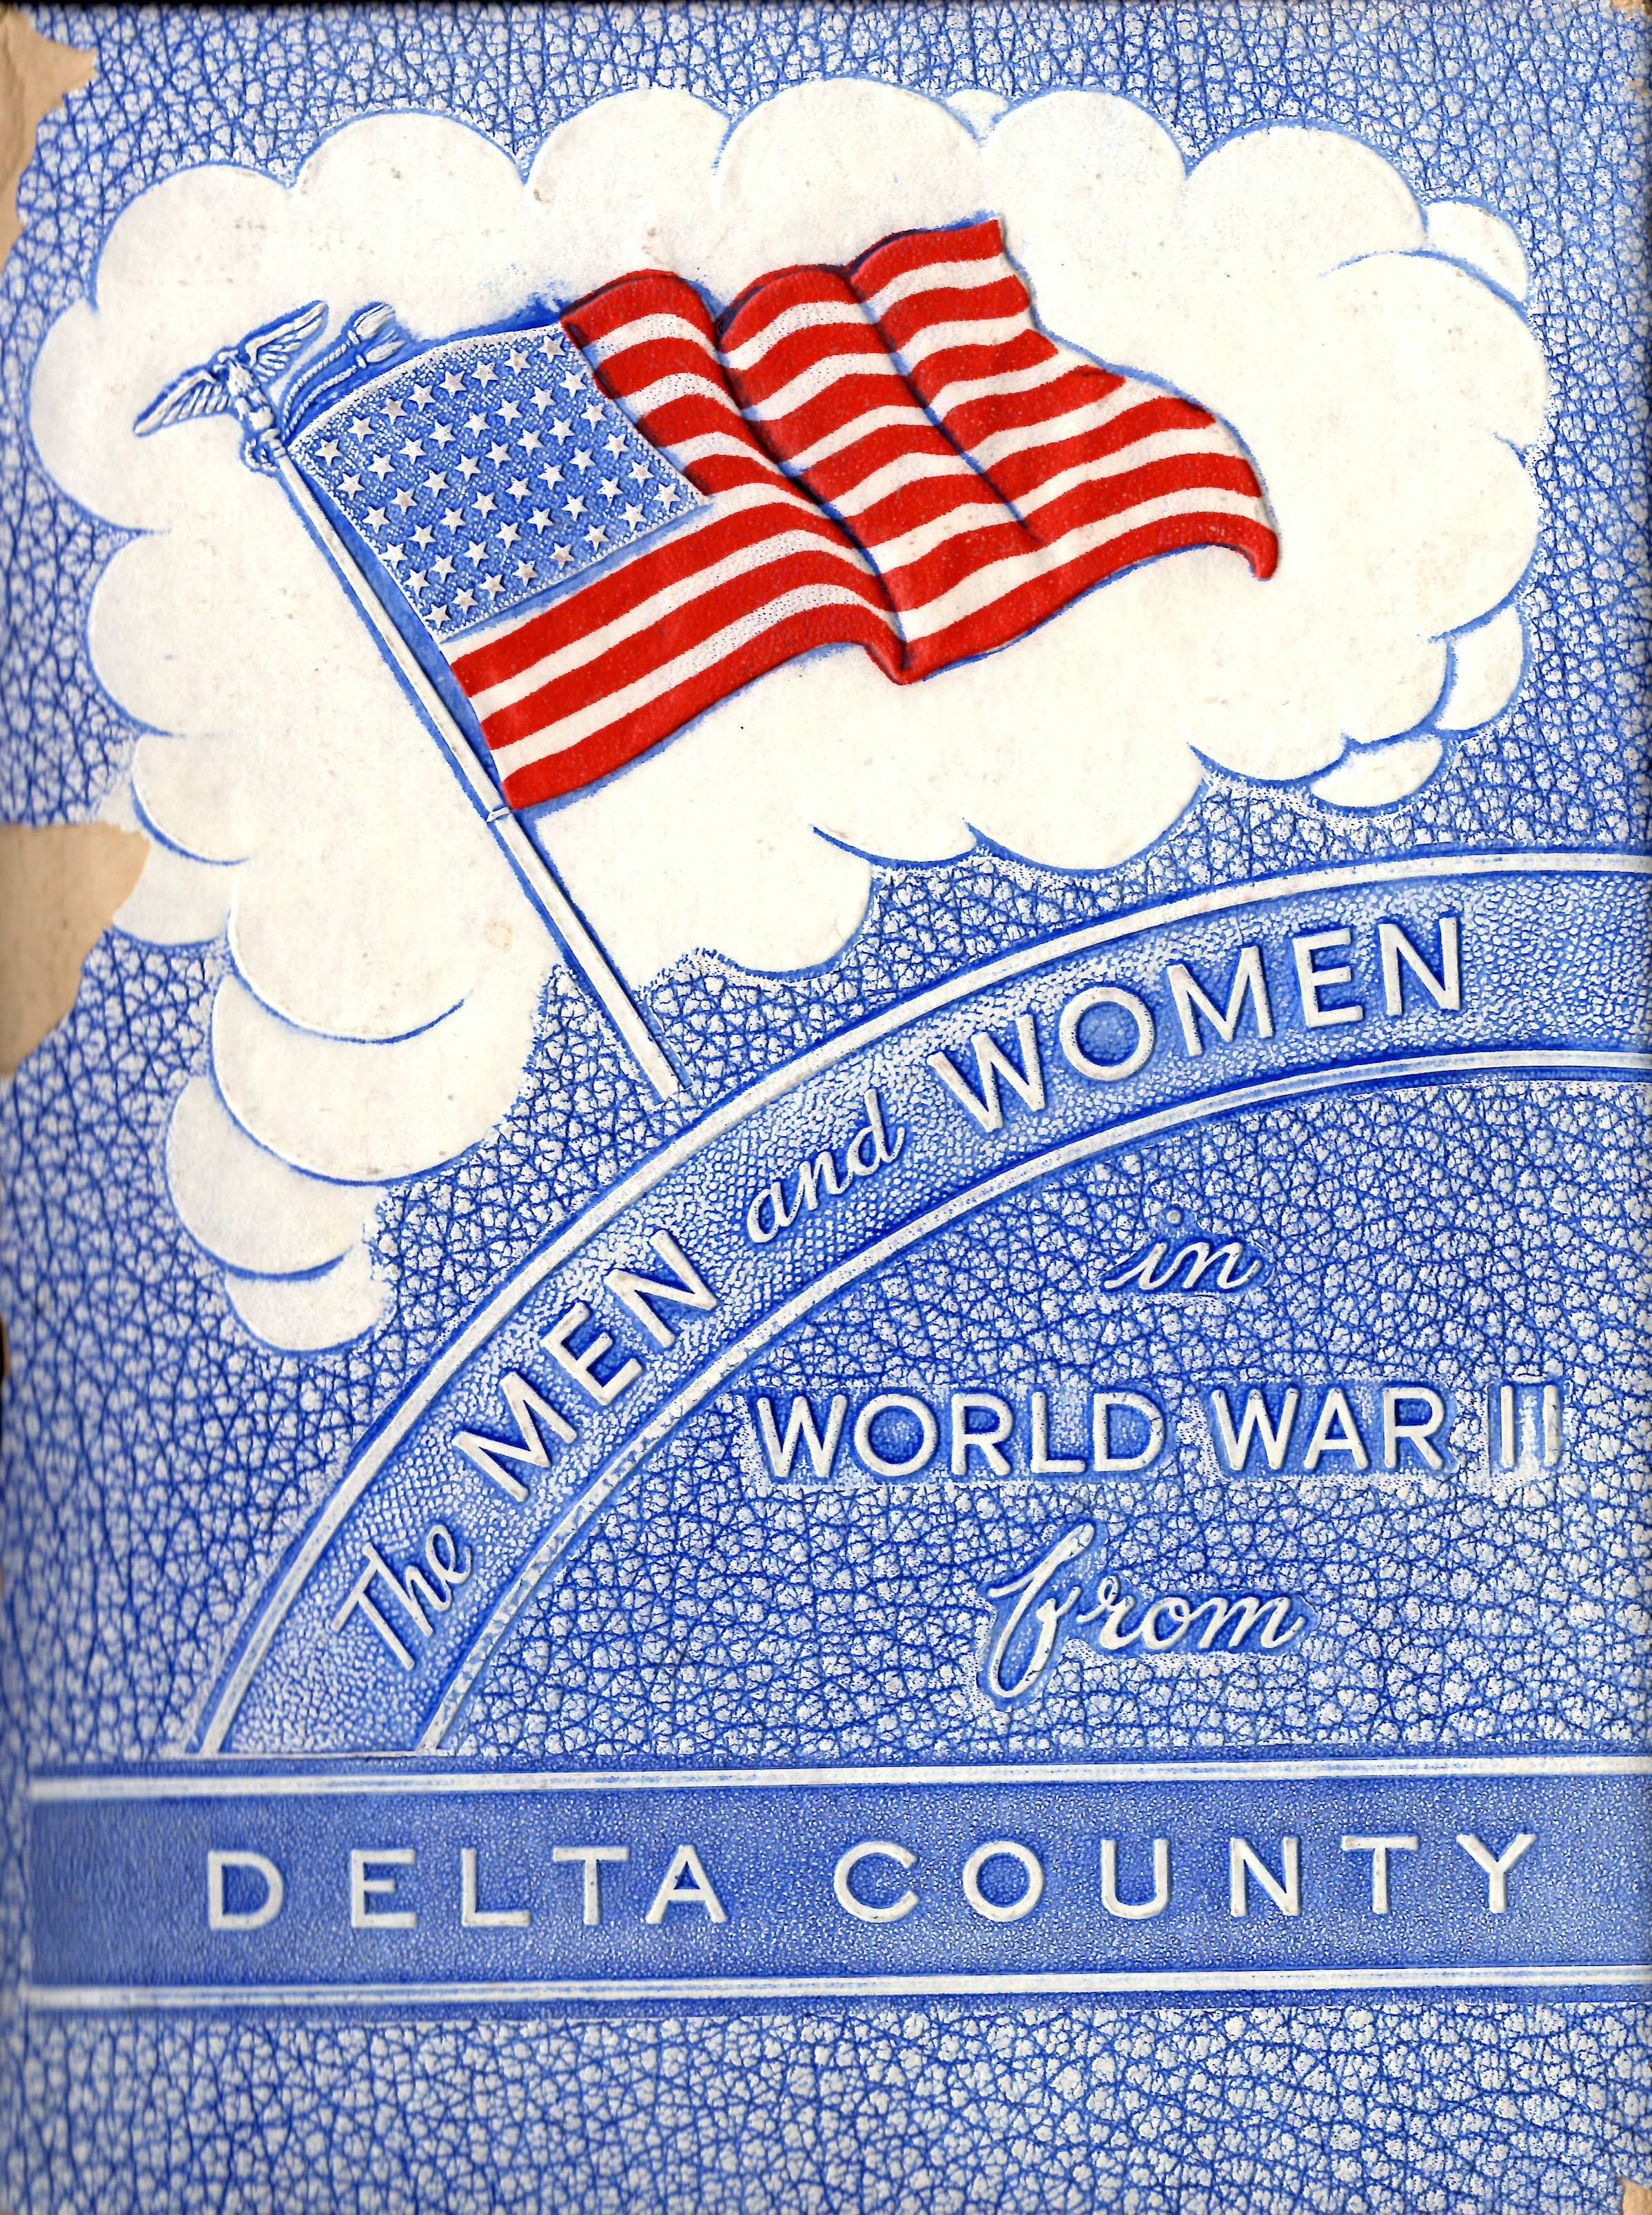 Men and women in the Armed Forces from Delta County Texas